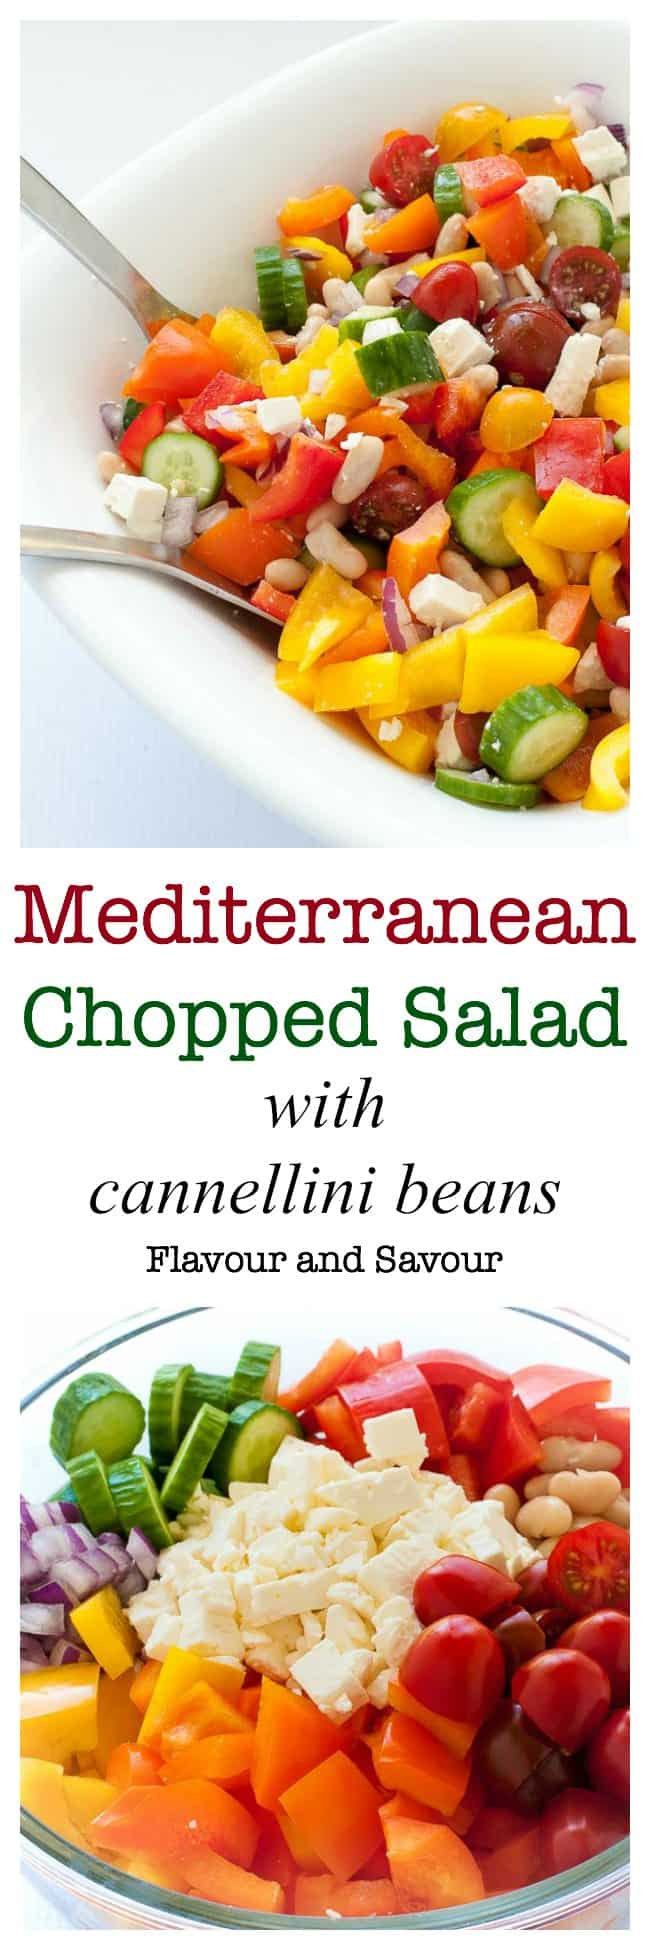 This colourful Mediterranean Chopped Salad recipe is easy to adapt to your family's tastes. Fresh peppers, cucumbers tomatoes, onions, beans and feta cheese make it a popular choice for potlucks or family gatherings.